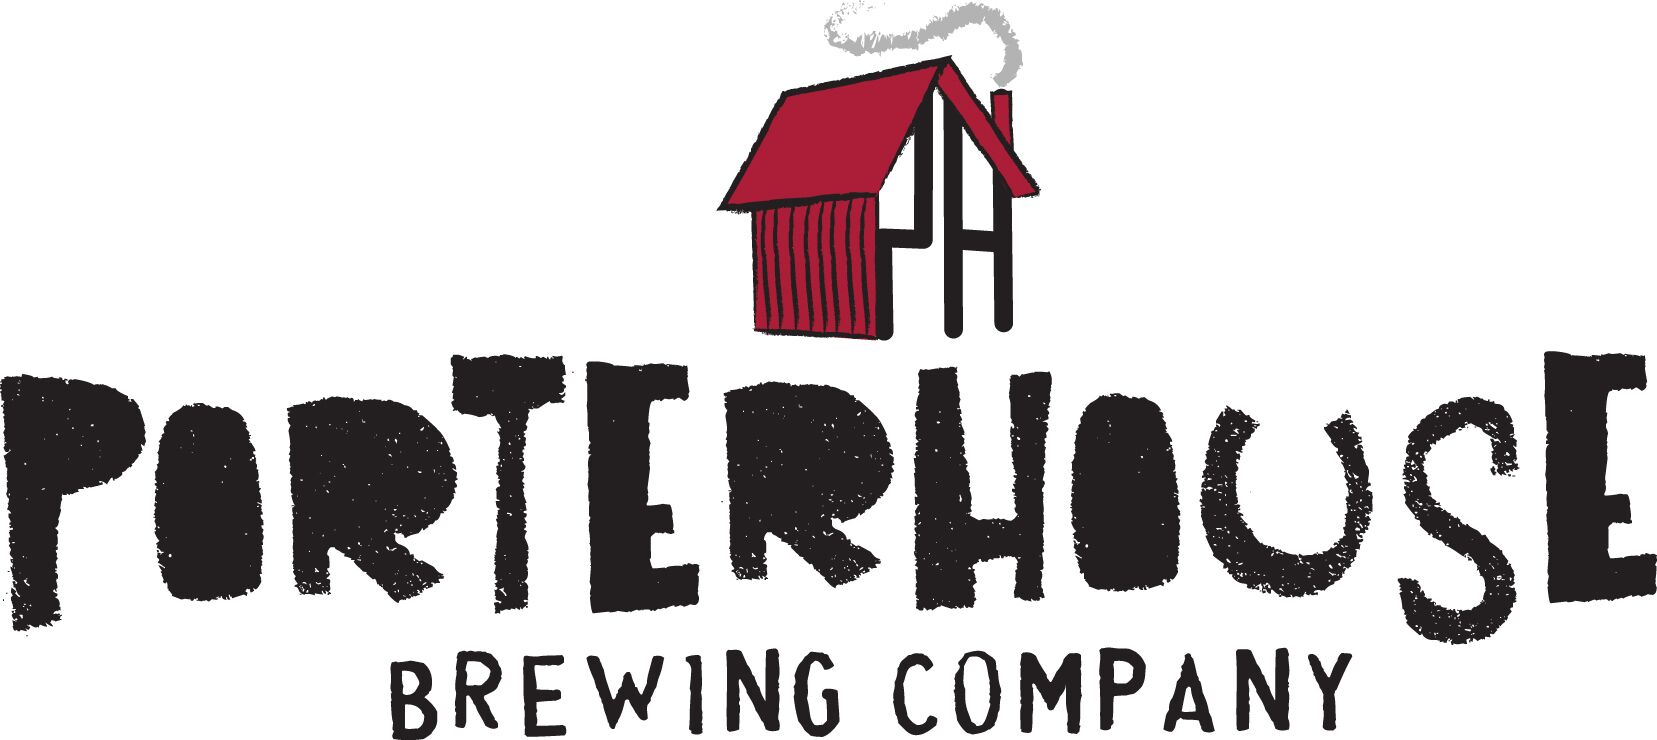 The Porterhouse Brewing Co logotype